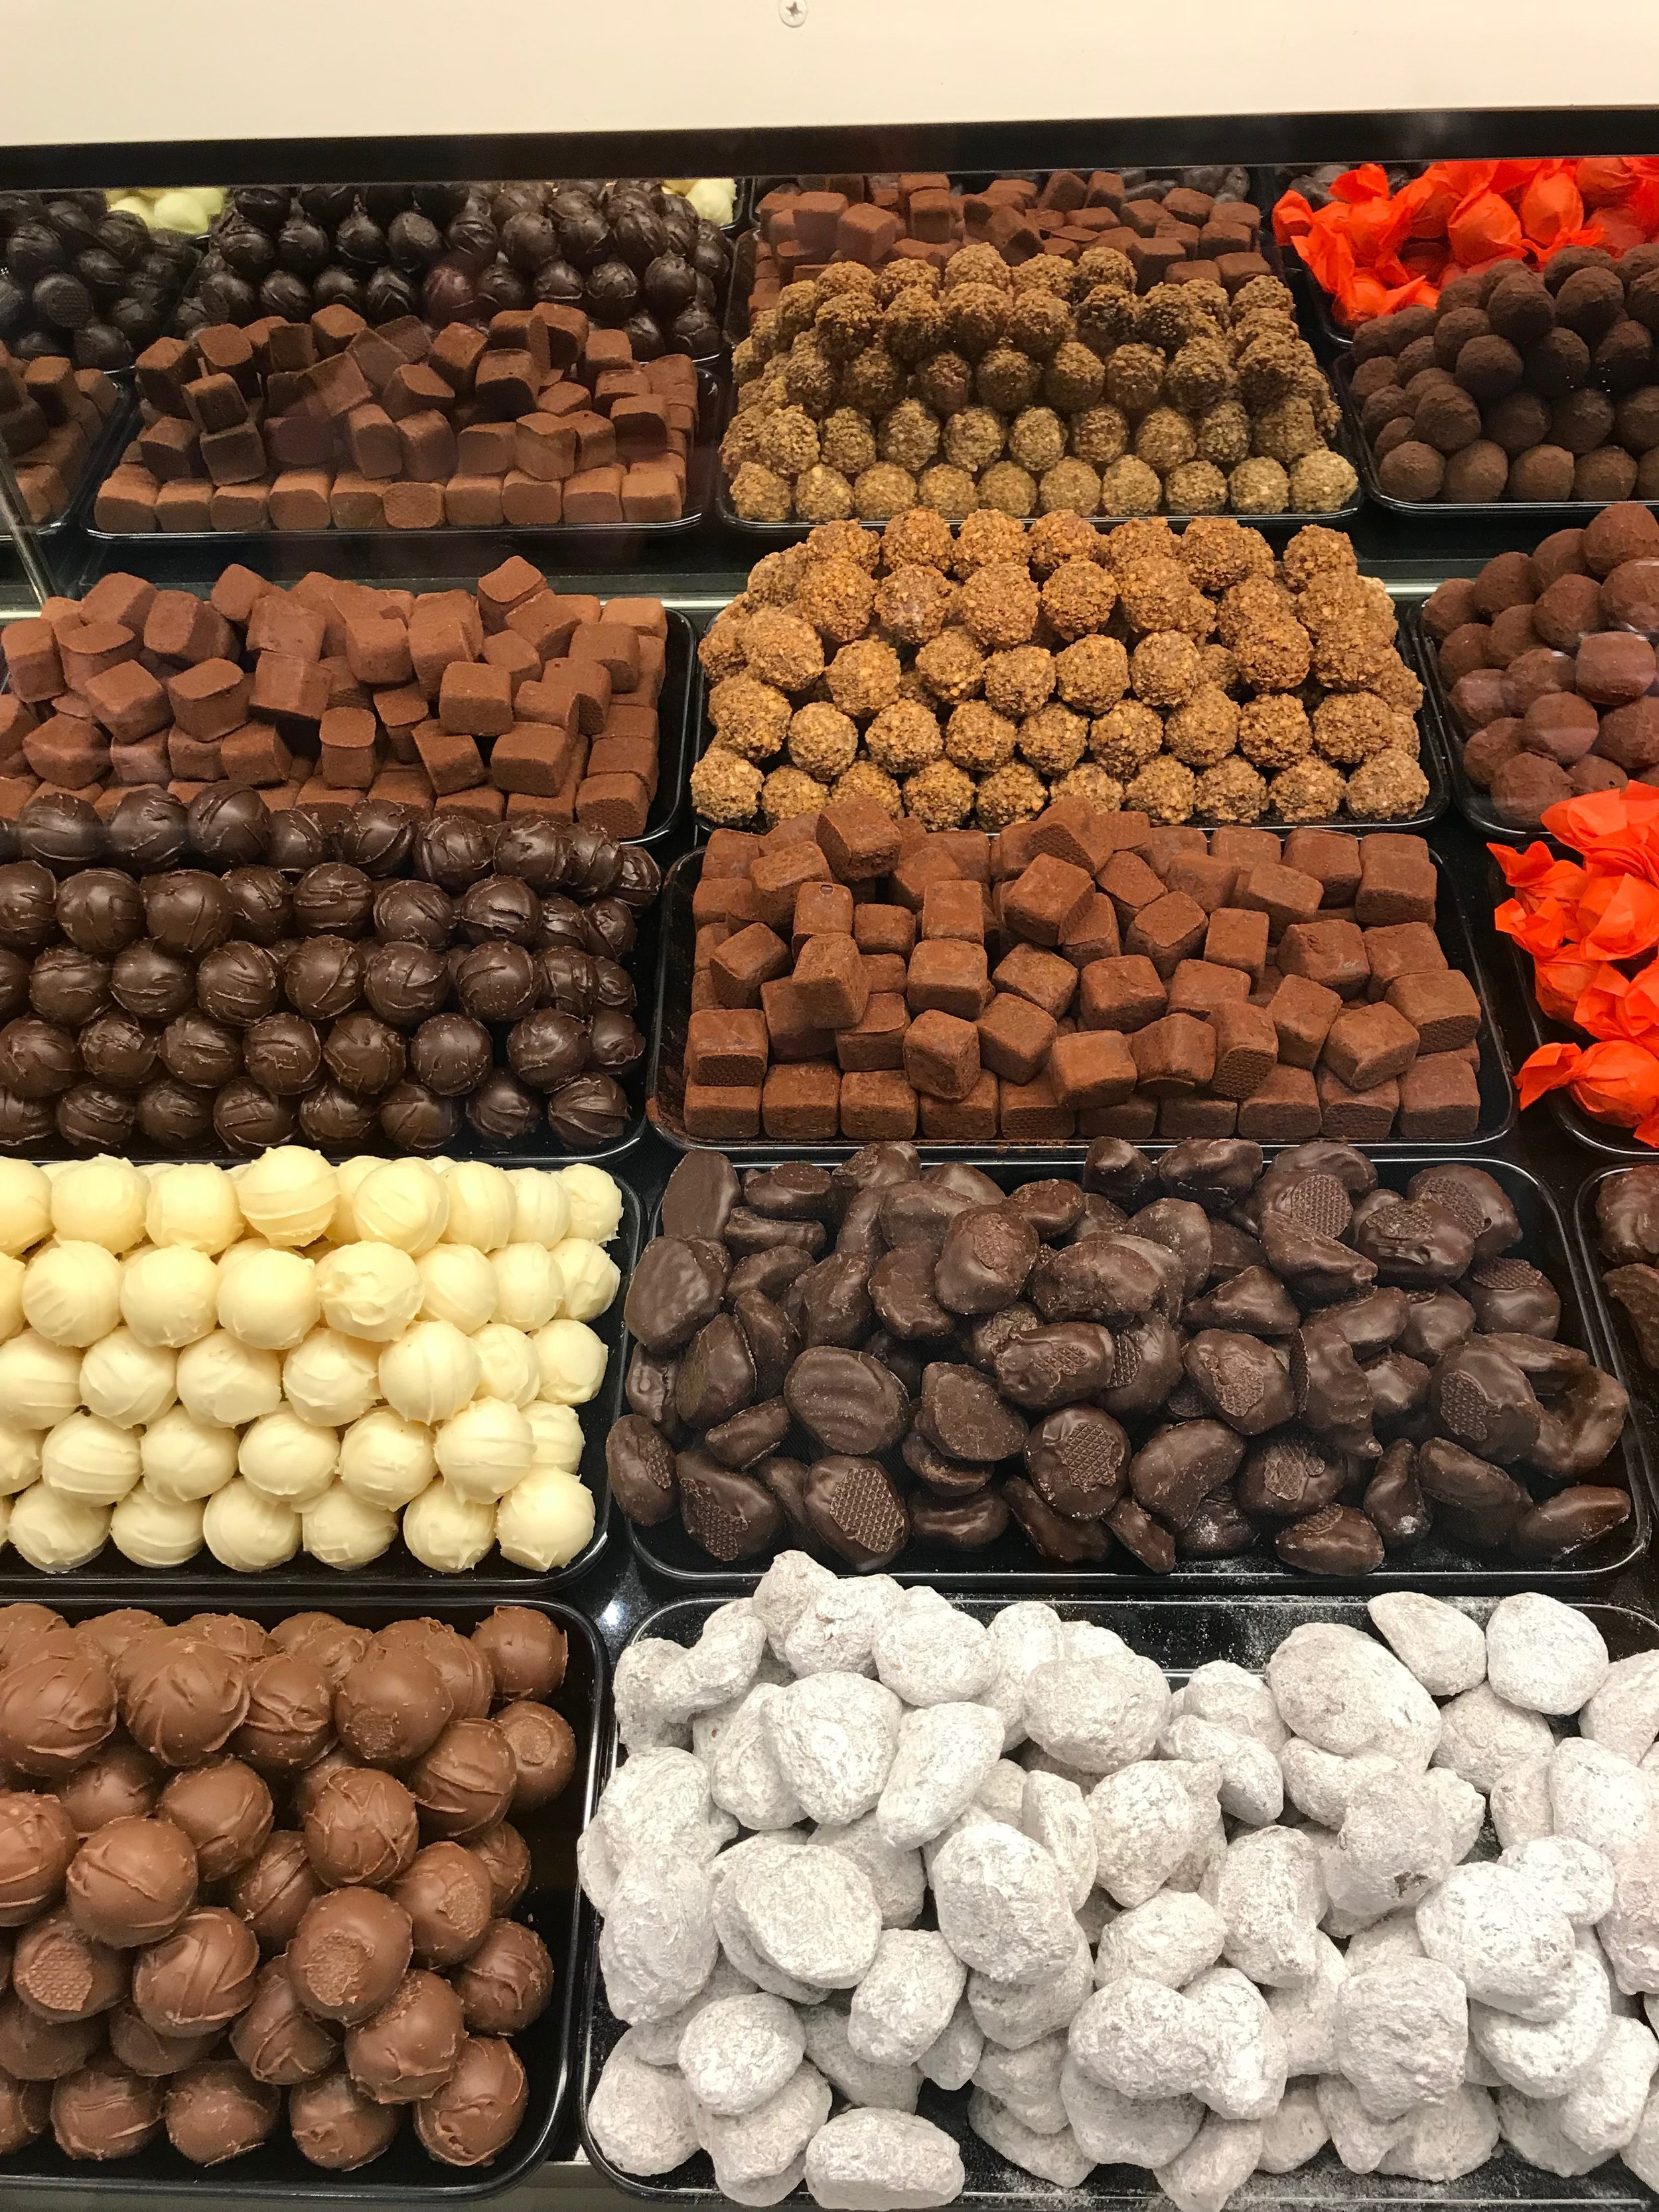 This chocolate makes my mouth water. Every item at Confiserie Tschirren was delicous